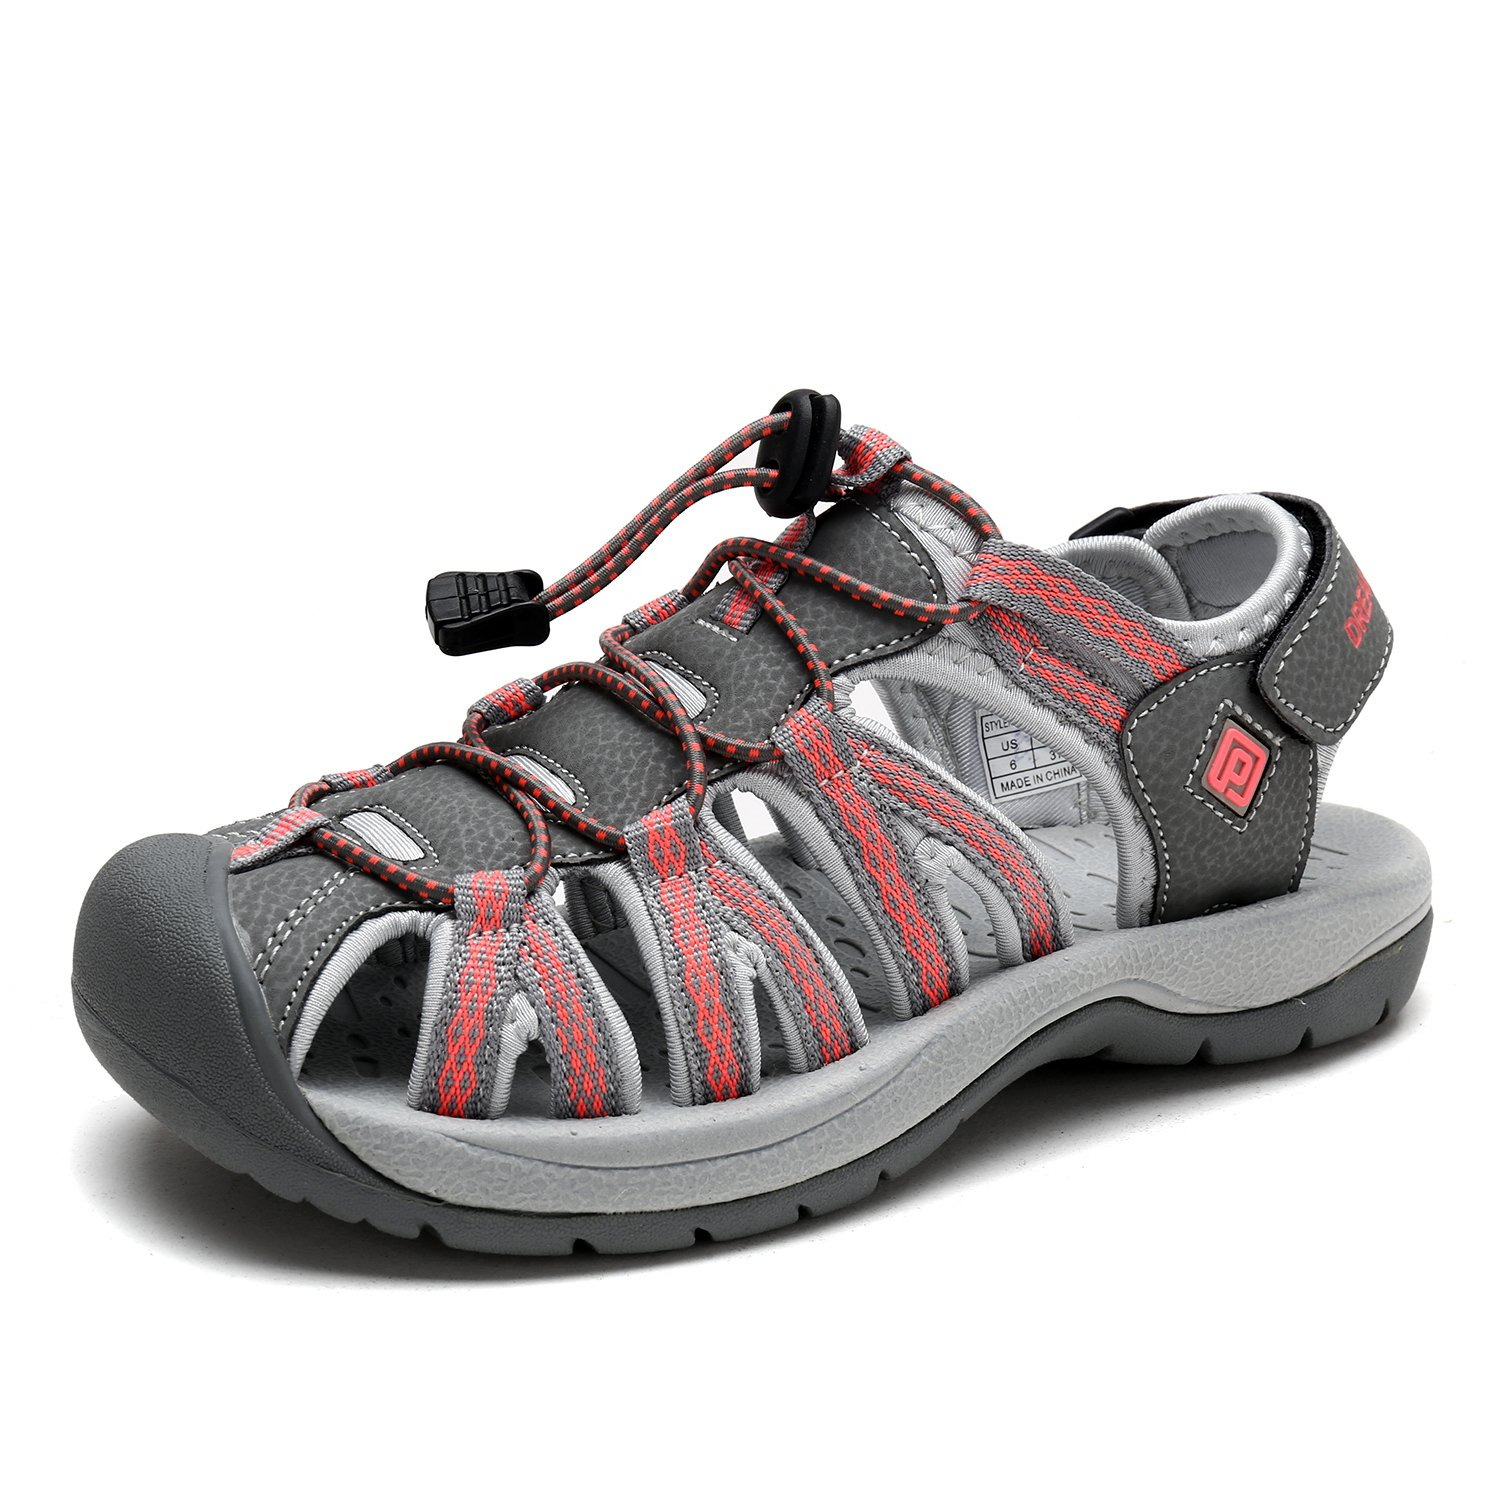 DREAM PAIRS Women's 160912-W Adventurous Summer Outdoor Sandals B077GBG1QS 8.5 B(M) US|New Grey Coral